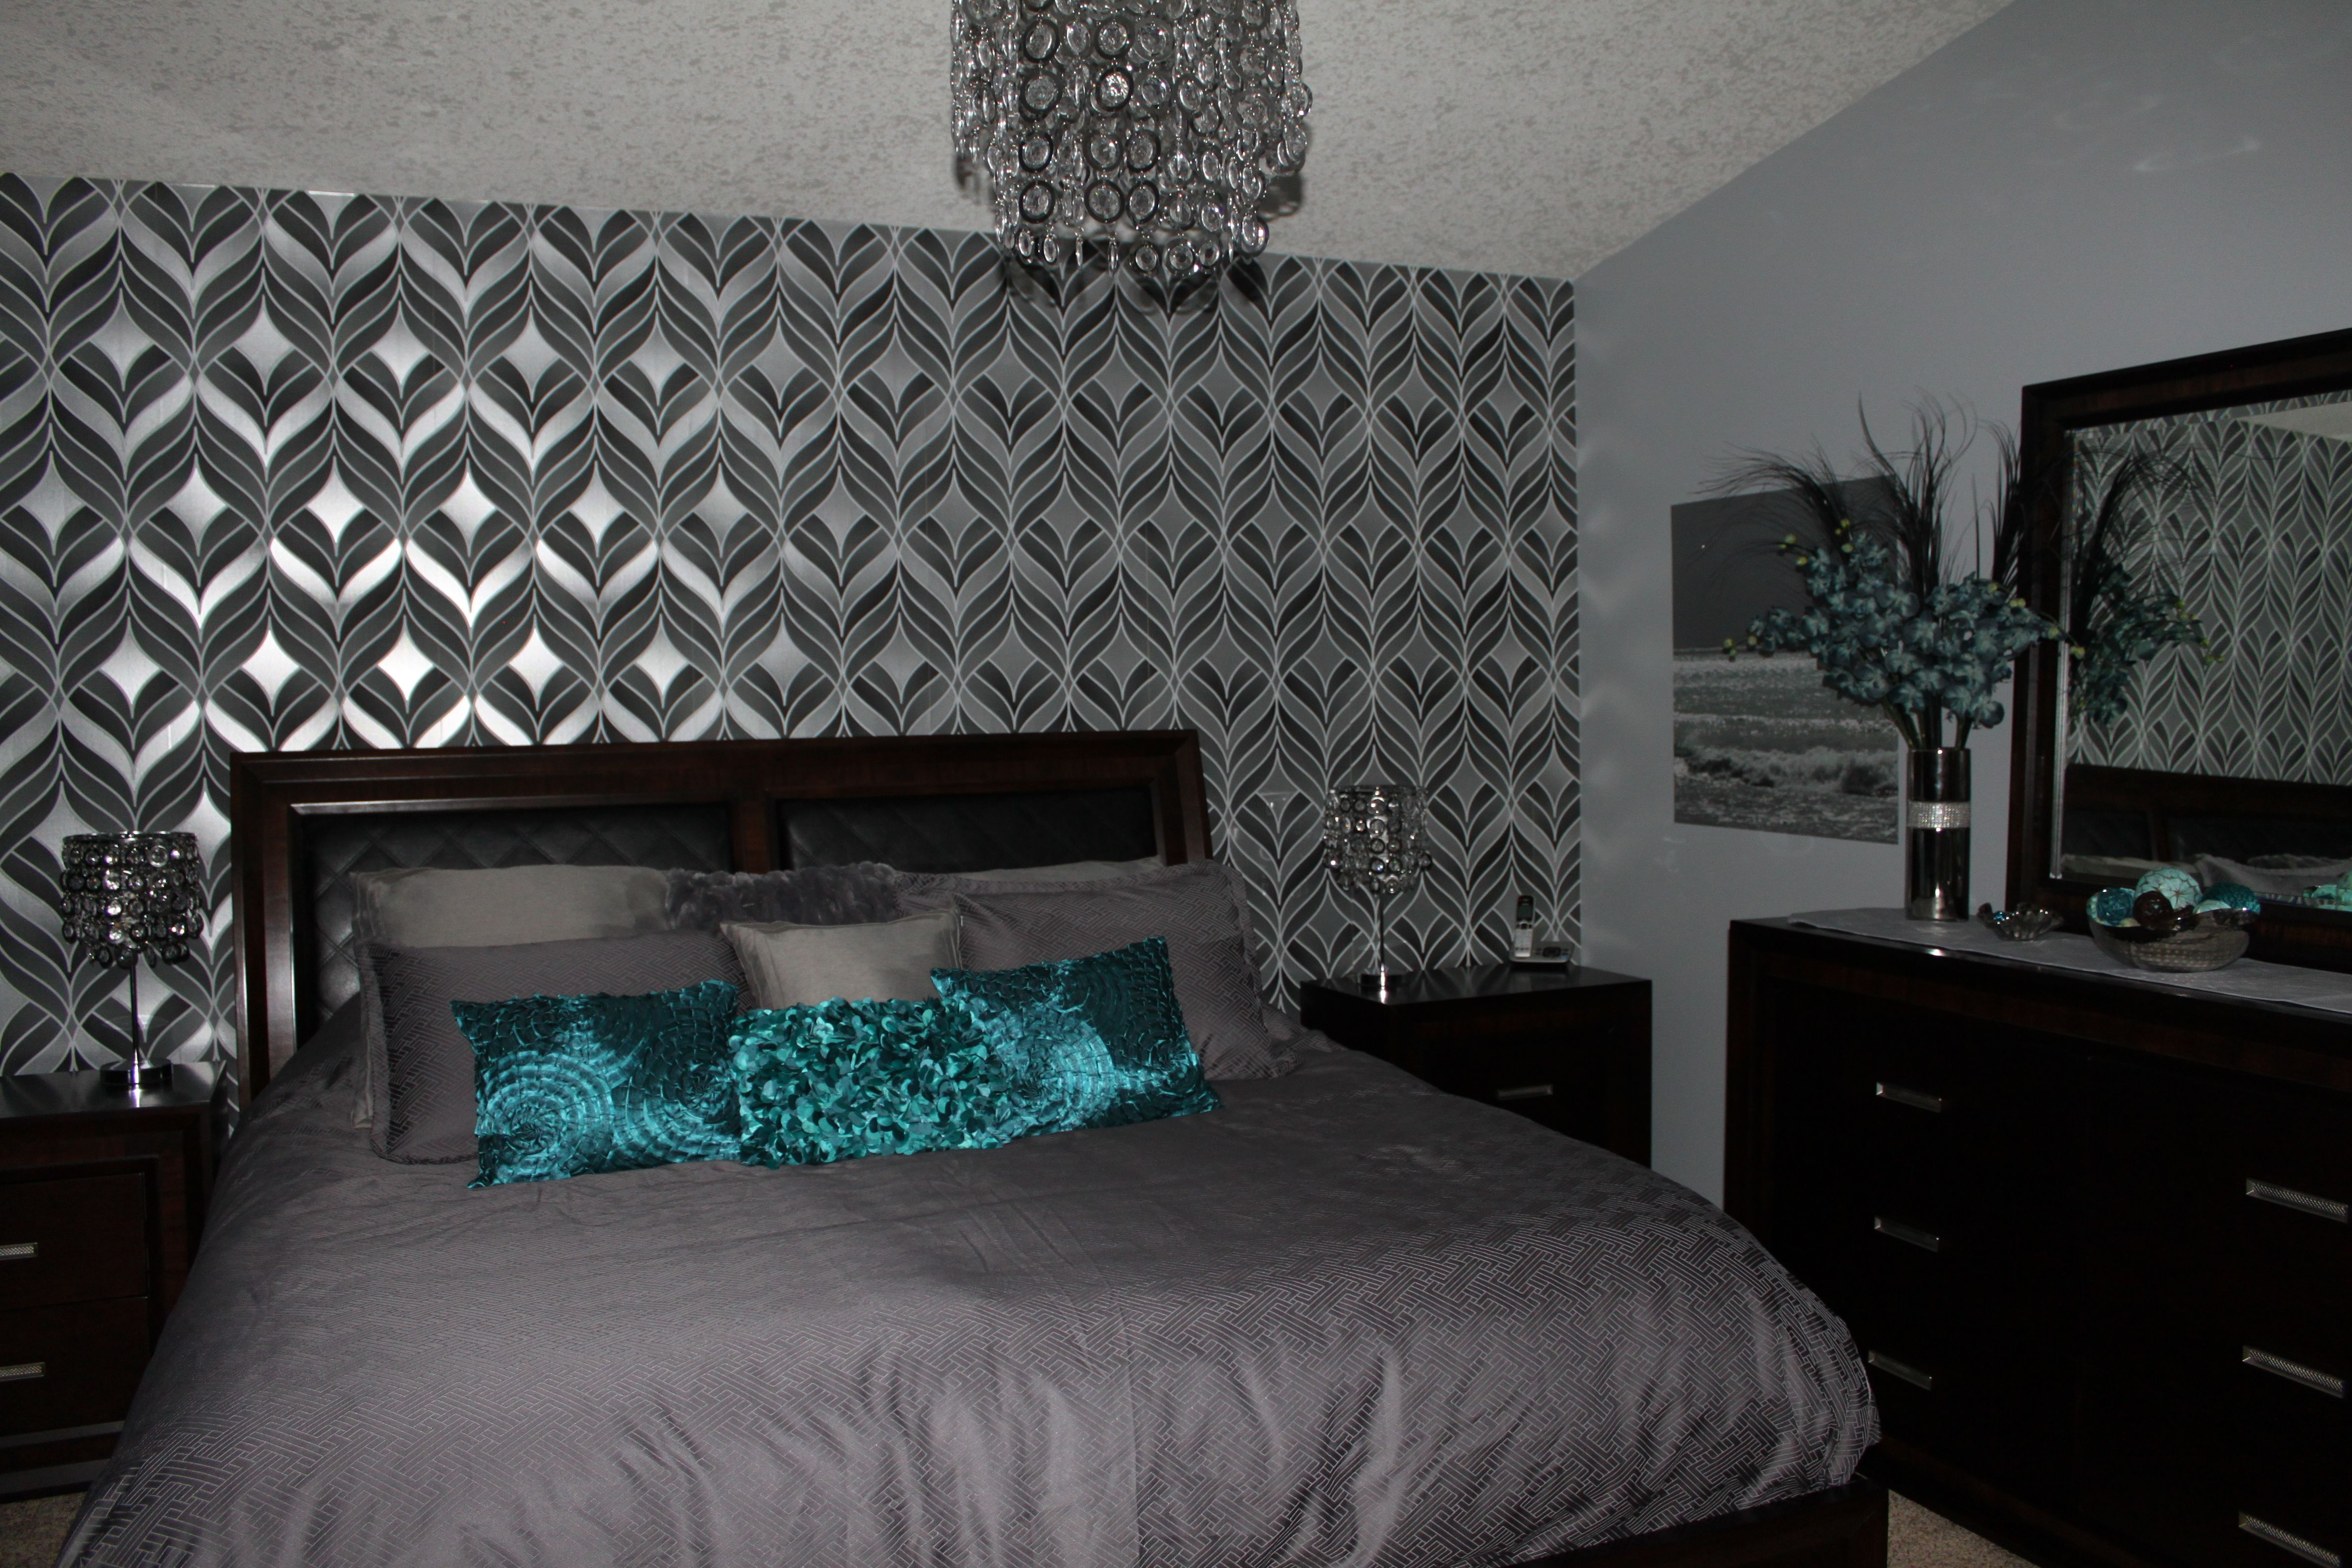 Teal Pictures Bedroom Teal And Silver Bedroom Best Home Renovation 2019 By Kelly S Depot